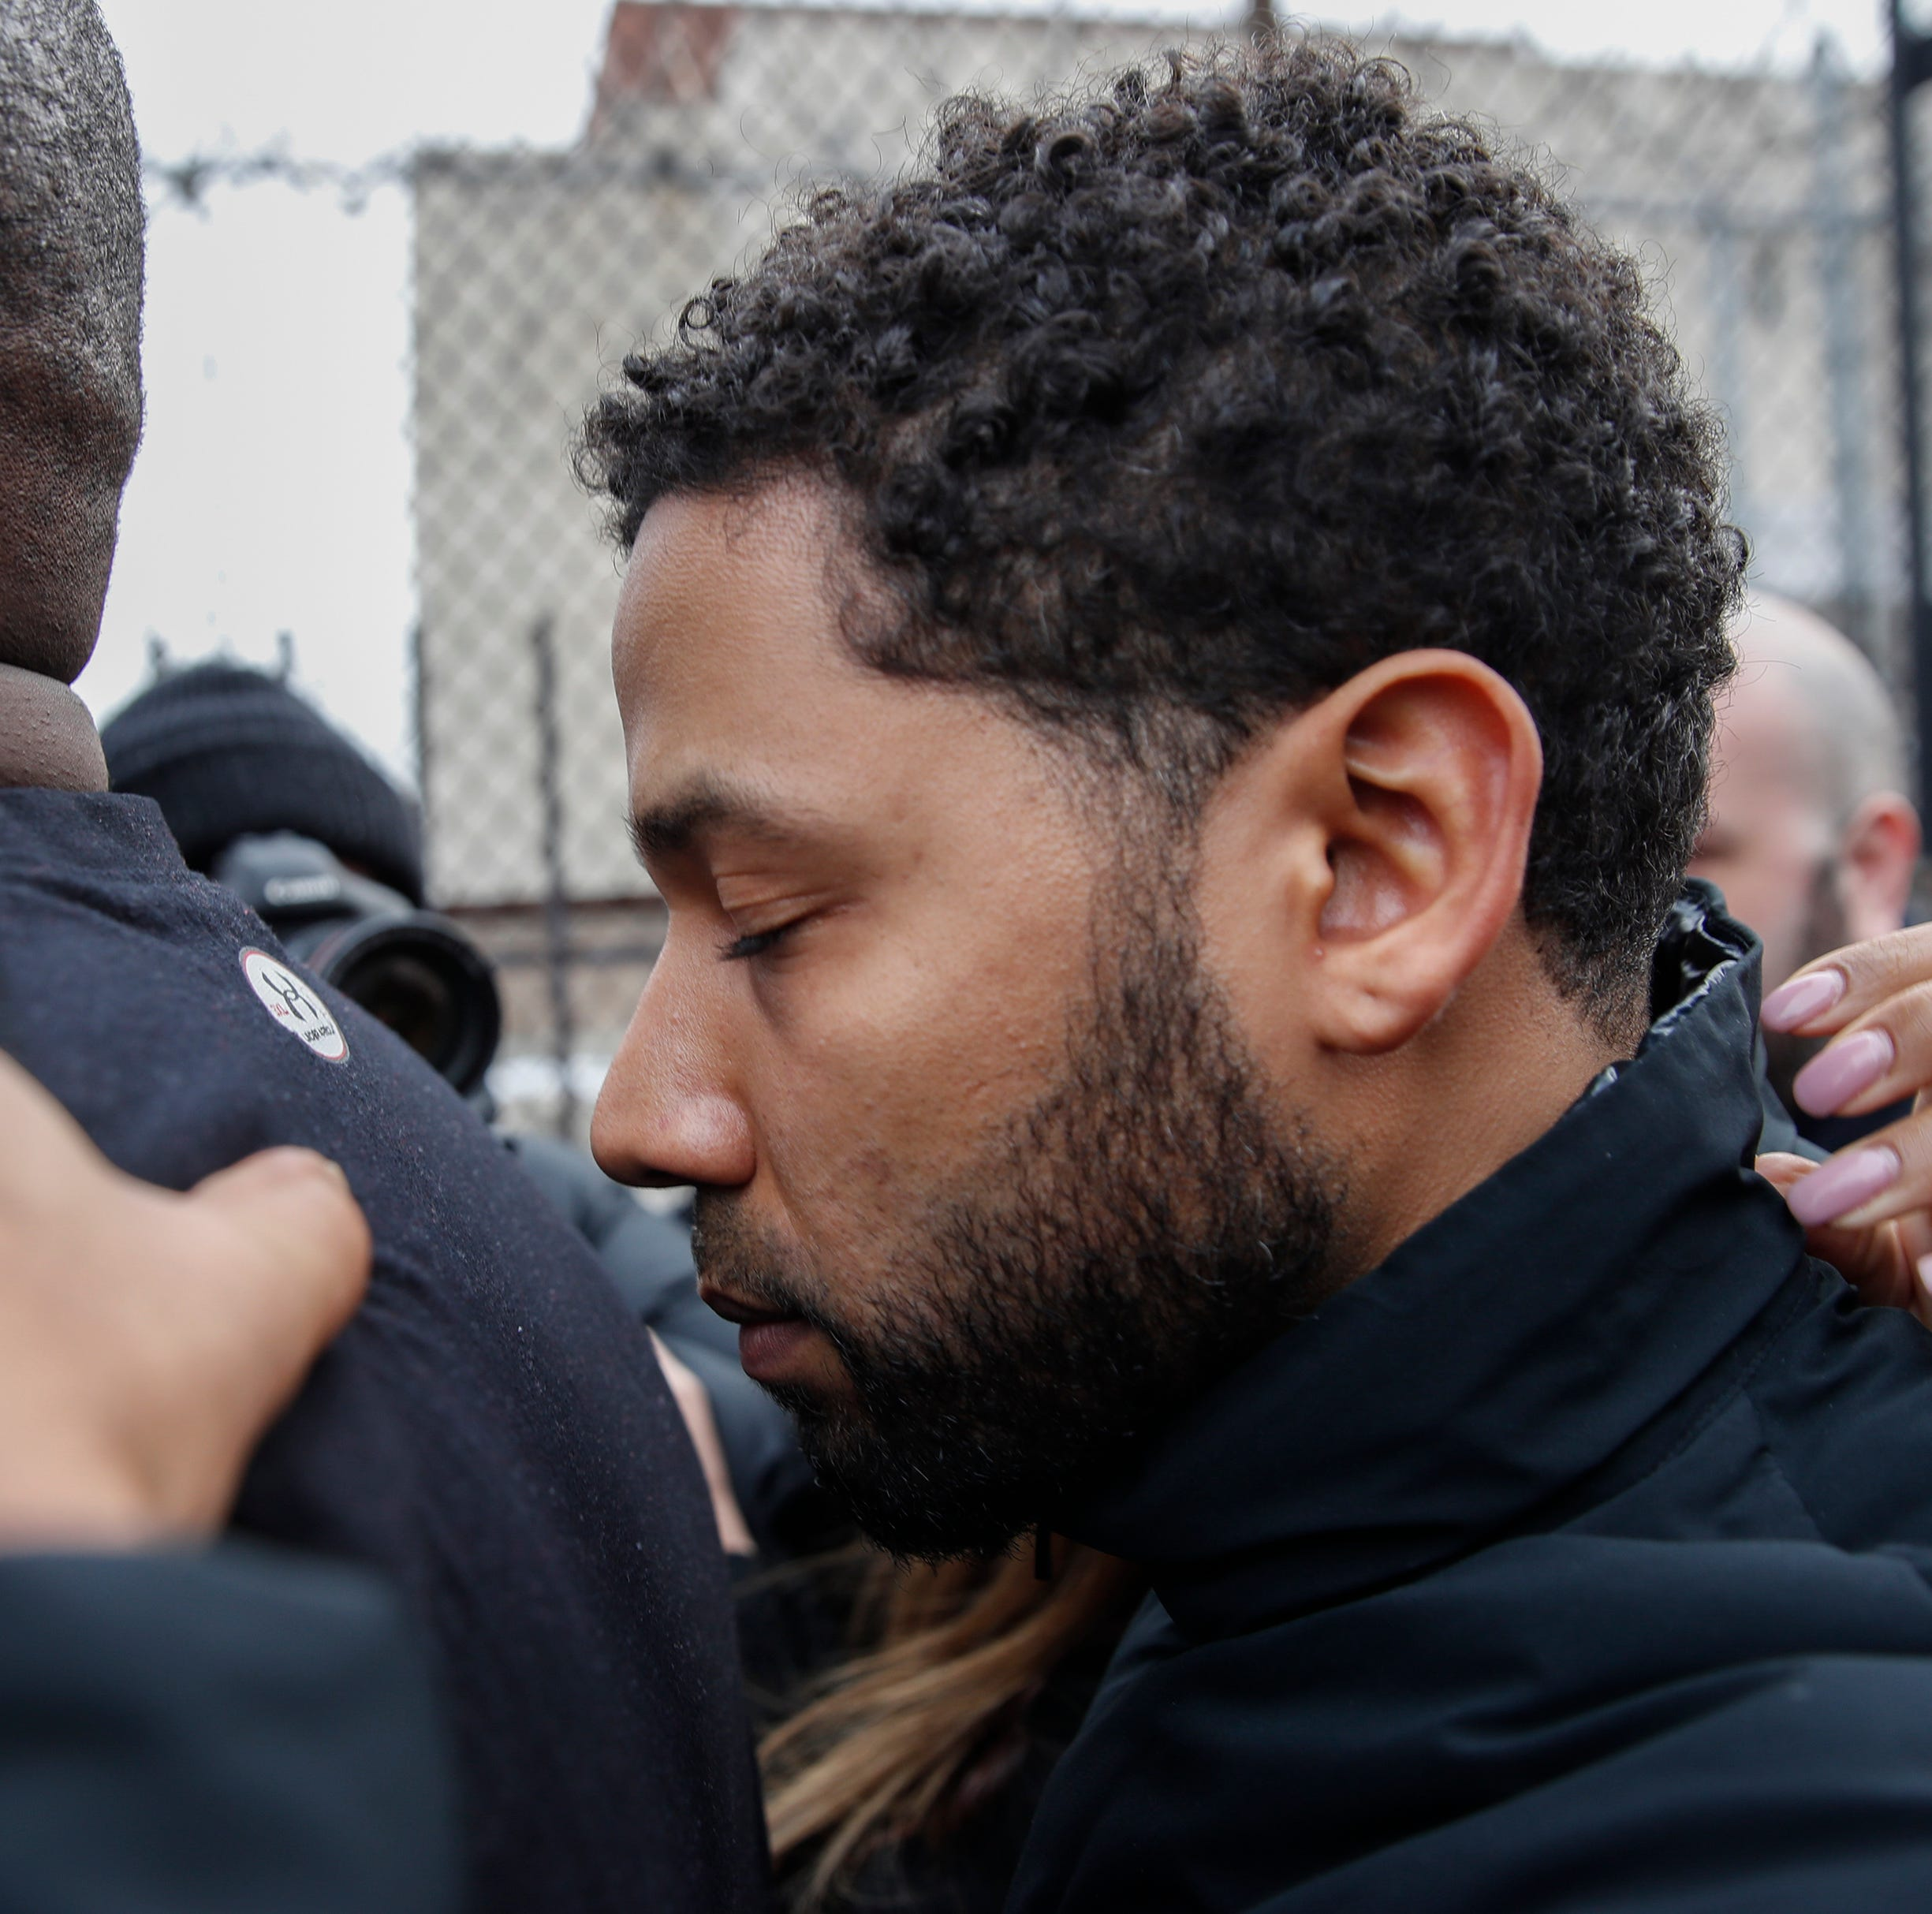 Jussie Smollett deserves punishment for hate crime hoax, but also compassion